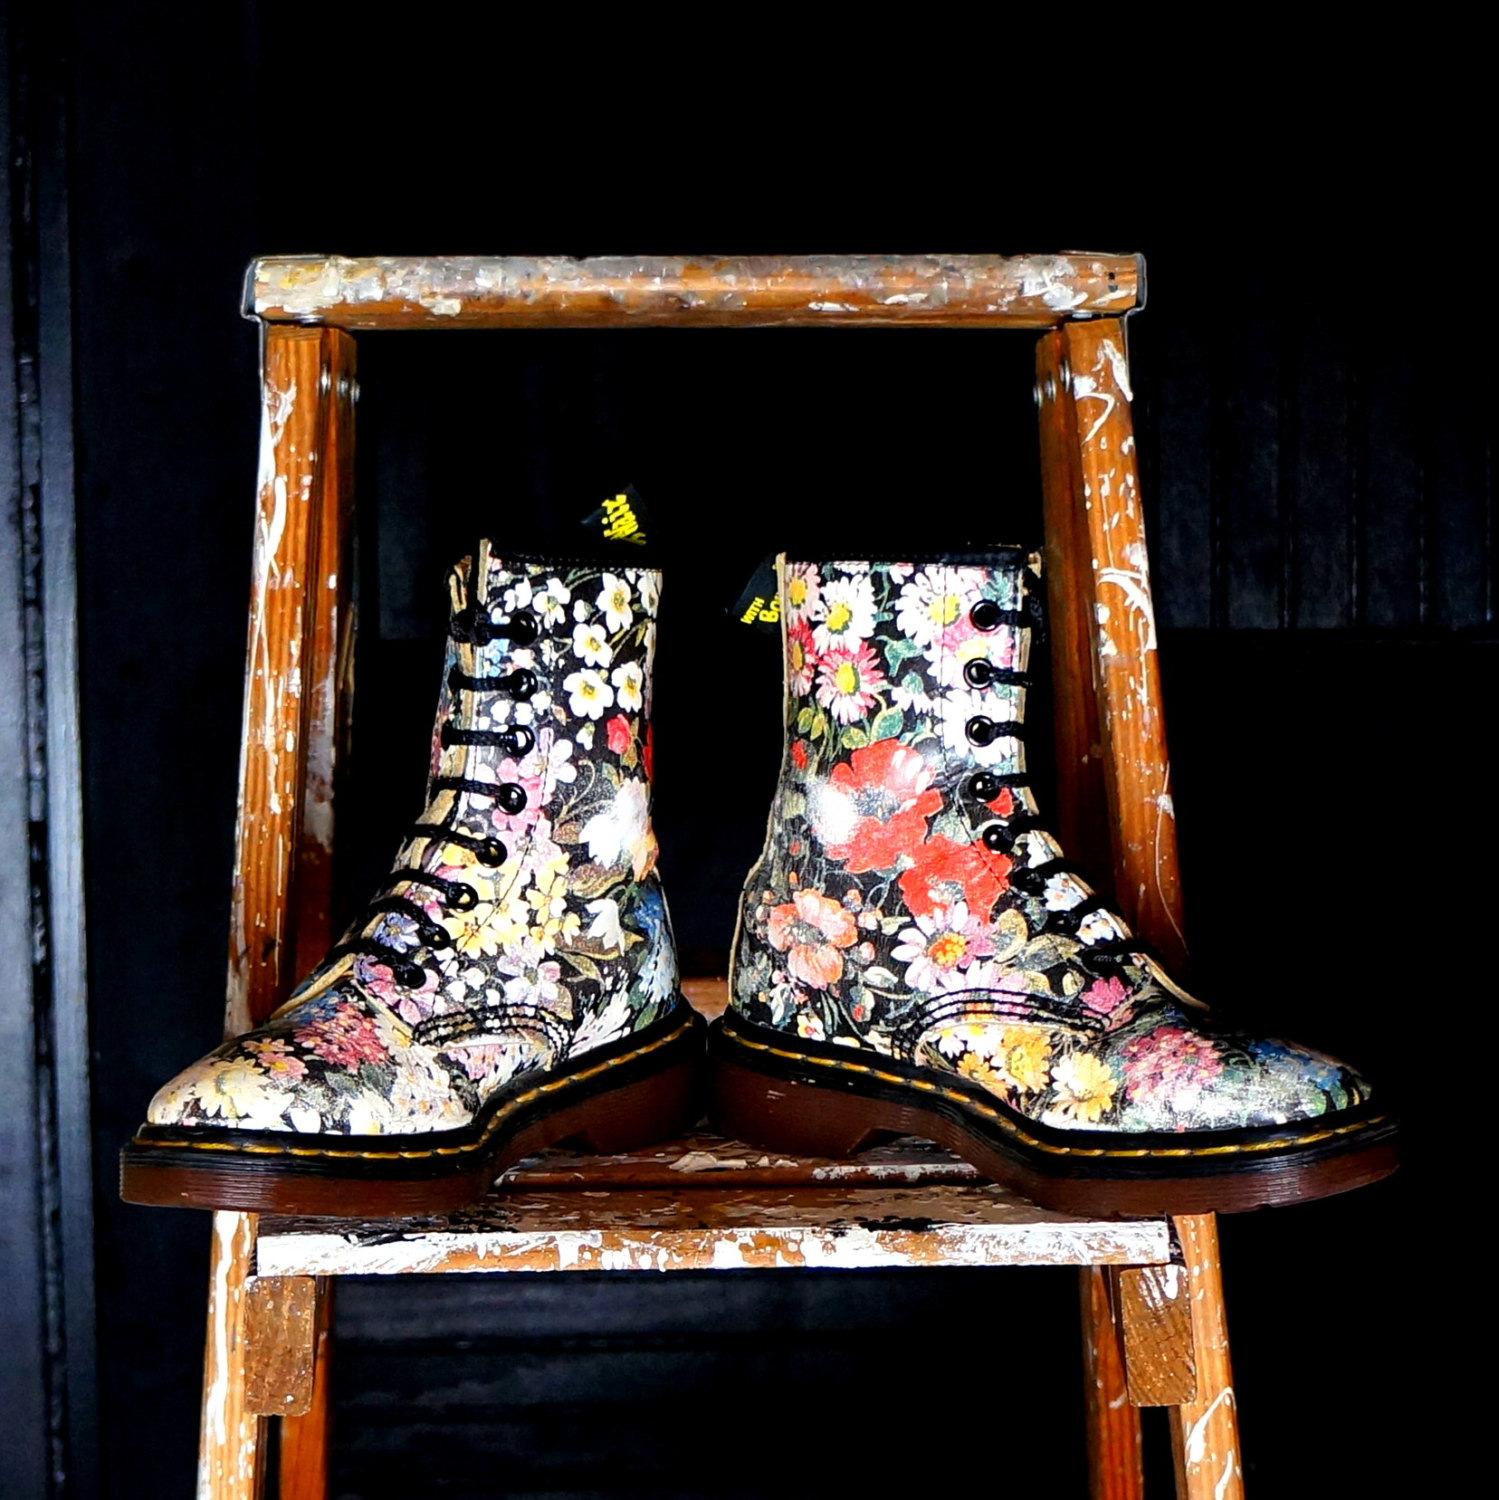 FLORAL Dr Martens Vintage Boots Eight (8) Eye Flower Docs Size uk 2 us 4 Old School Leather DM's Oi Punk Grunge Shoes Made in England